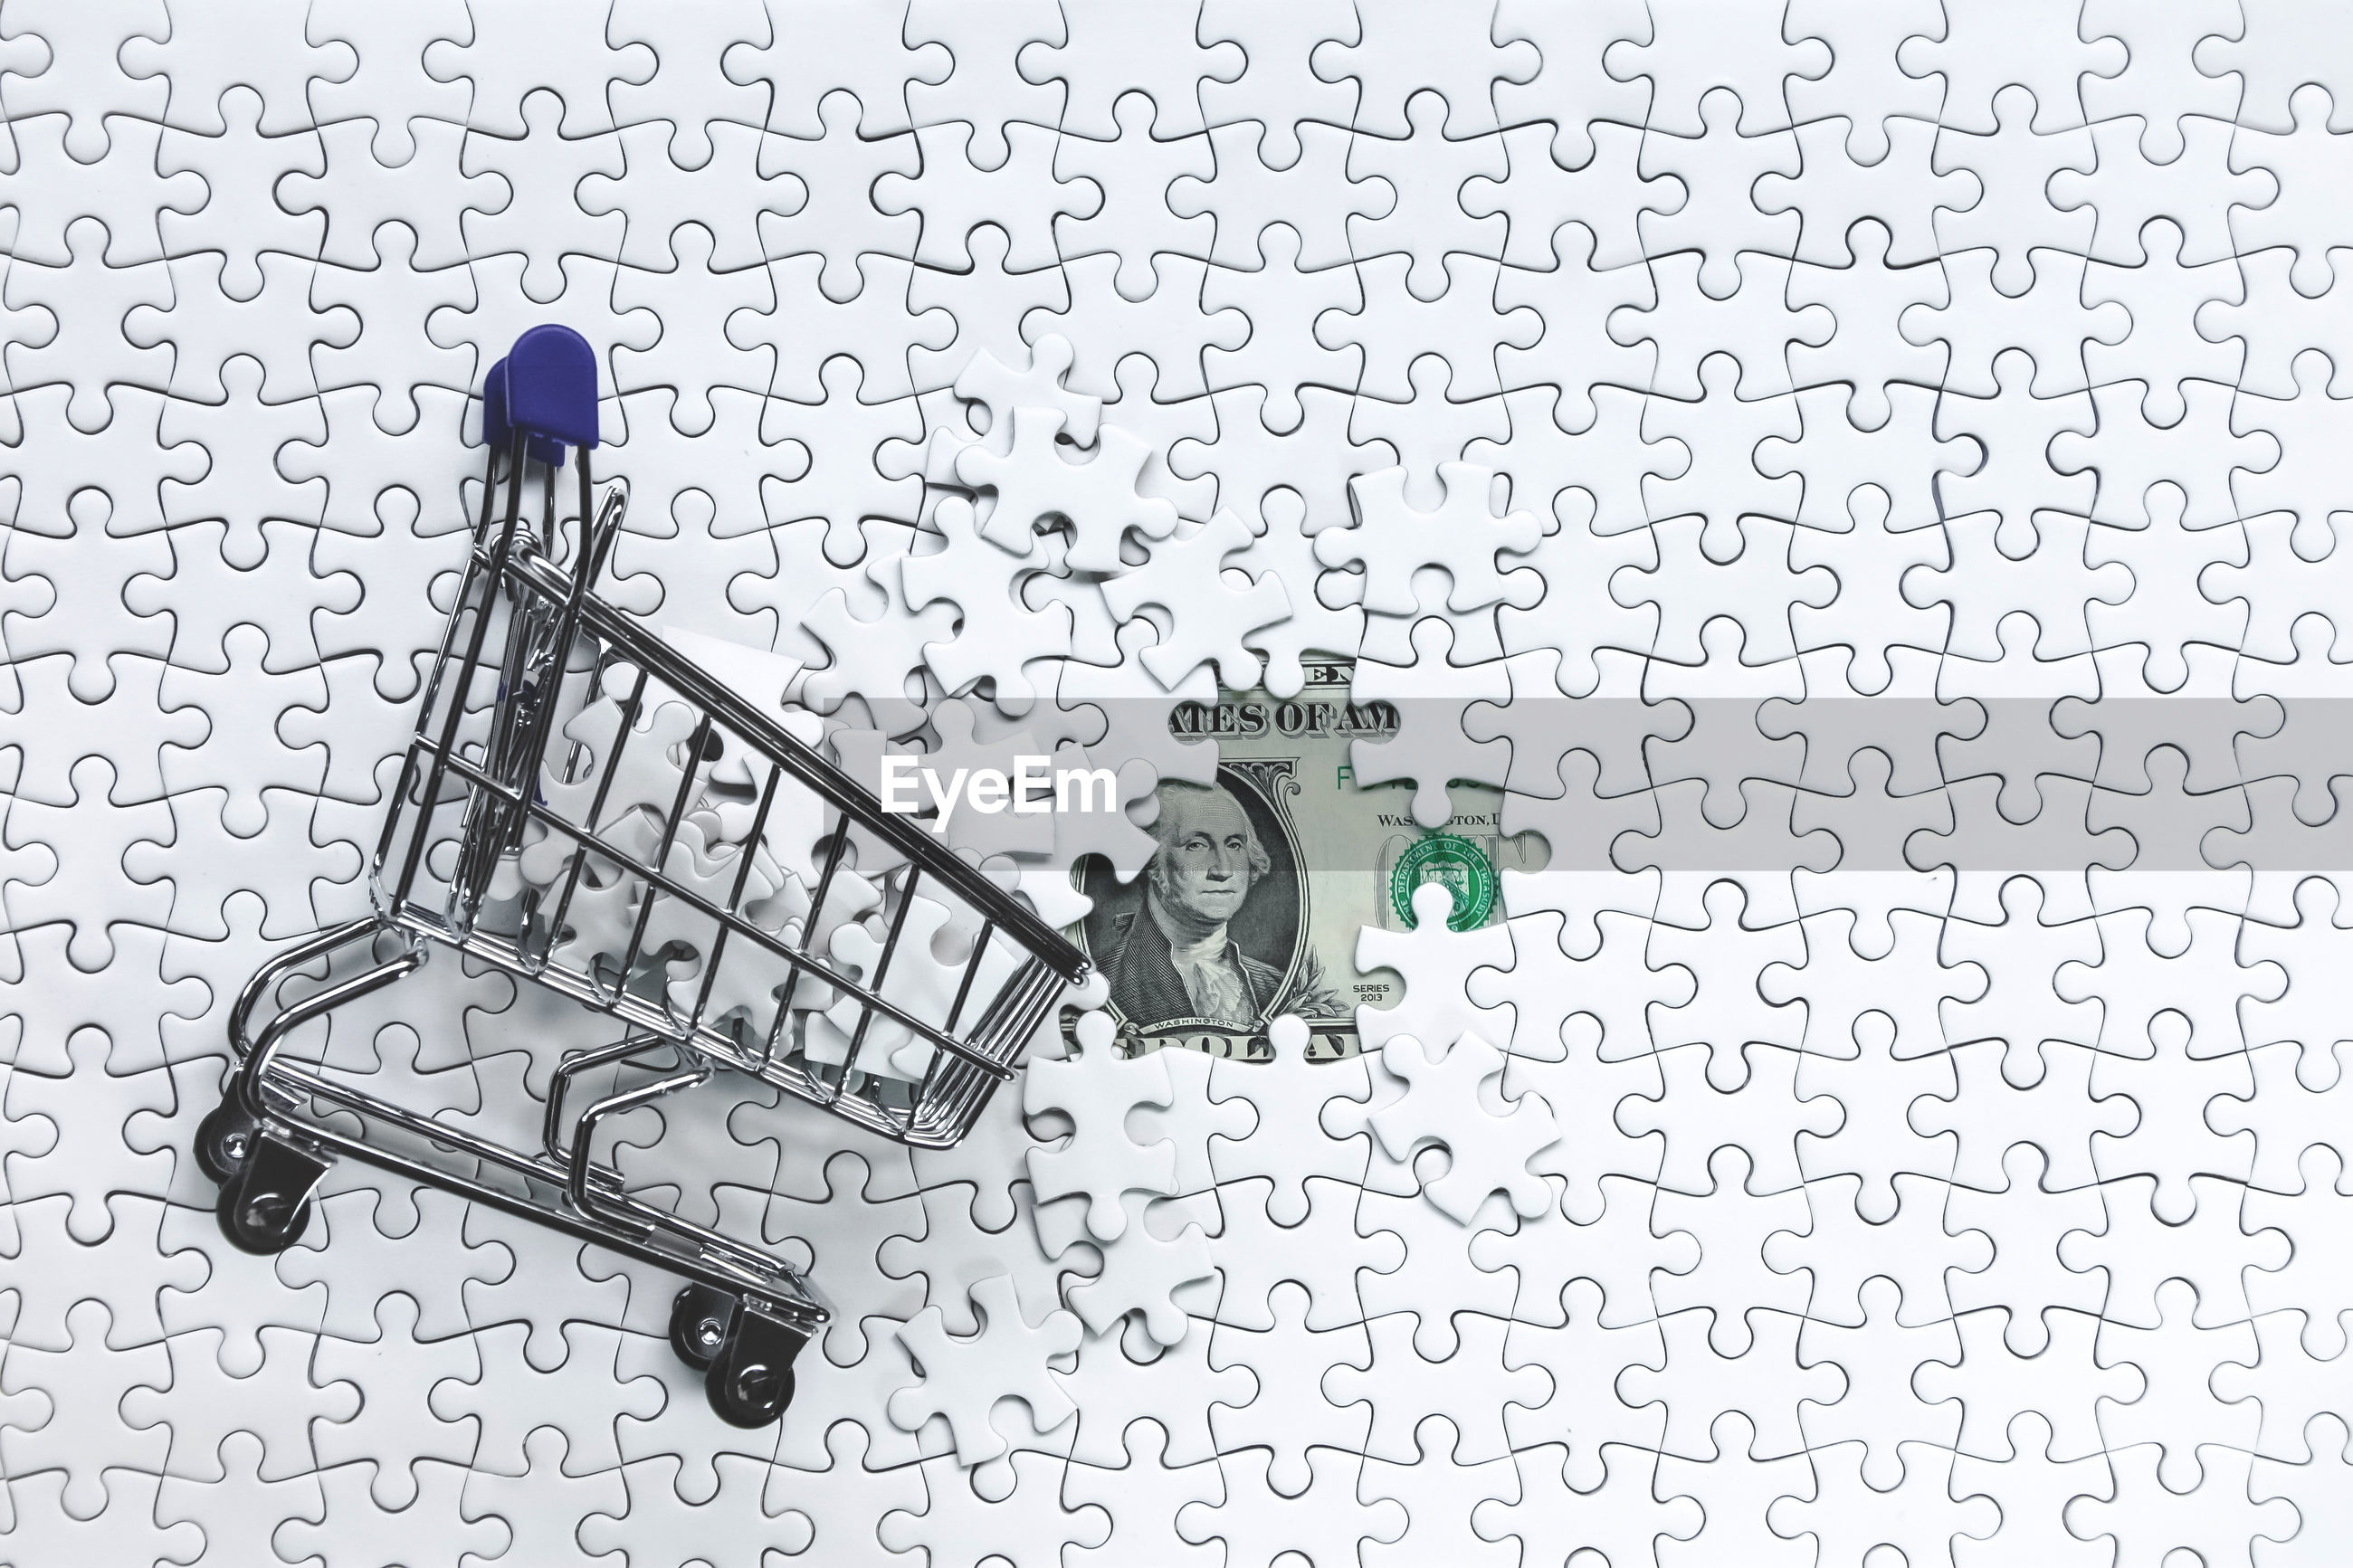 Directly above shot of small shopping cart on jigsaw puzzle